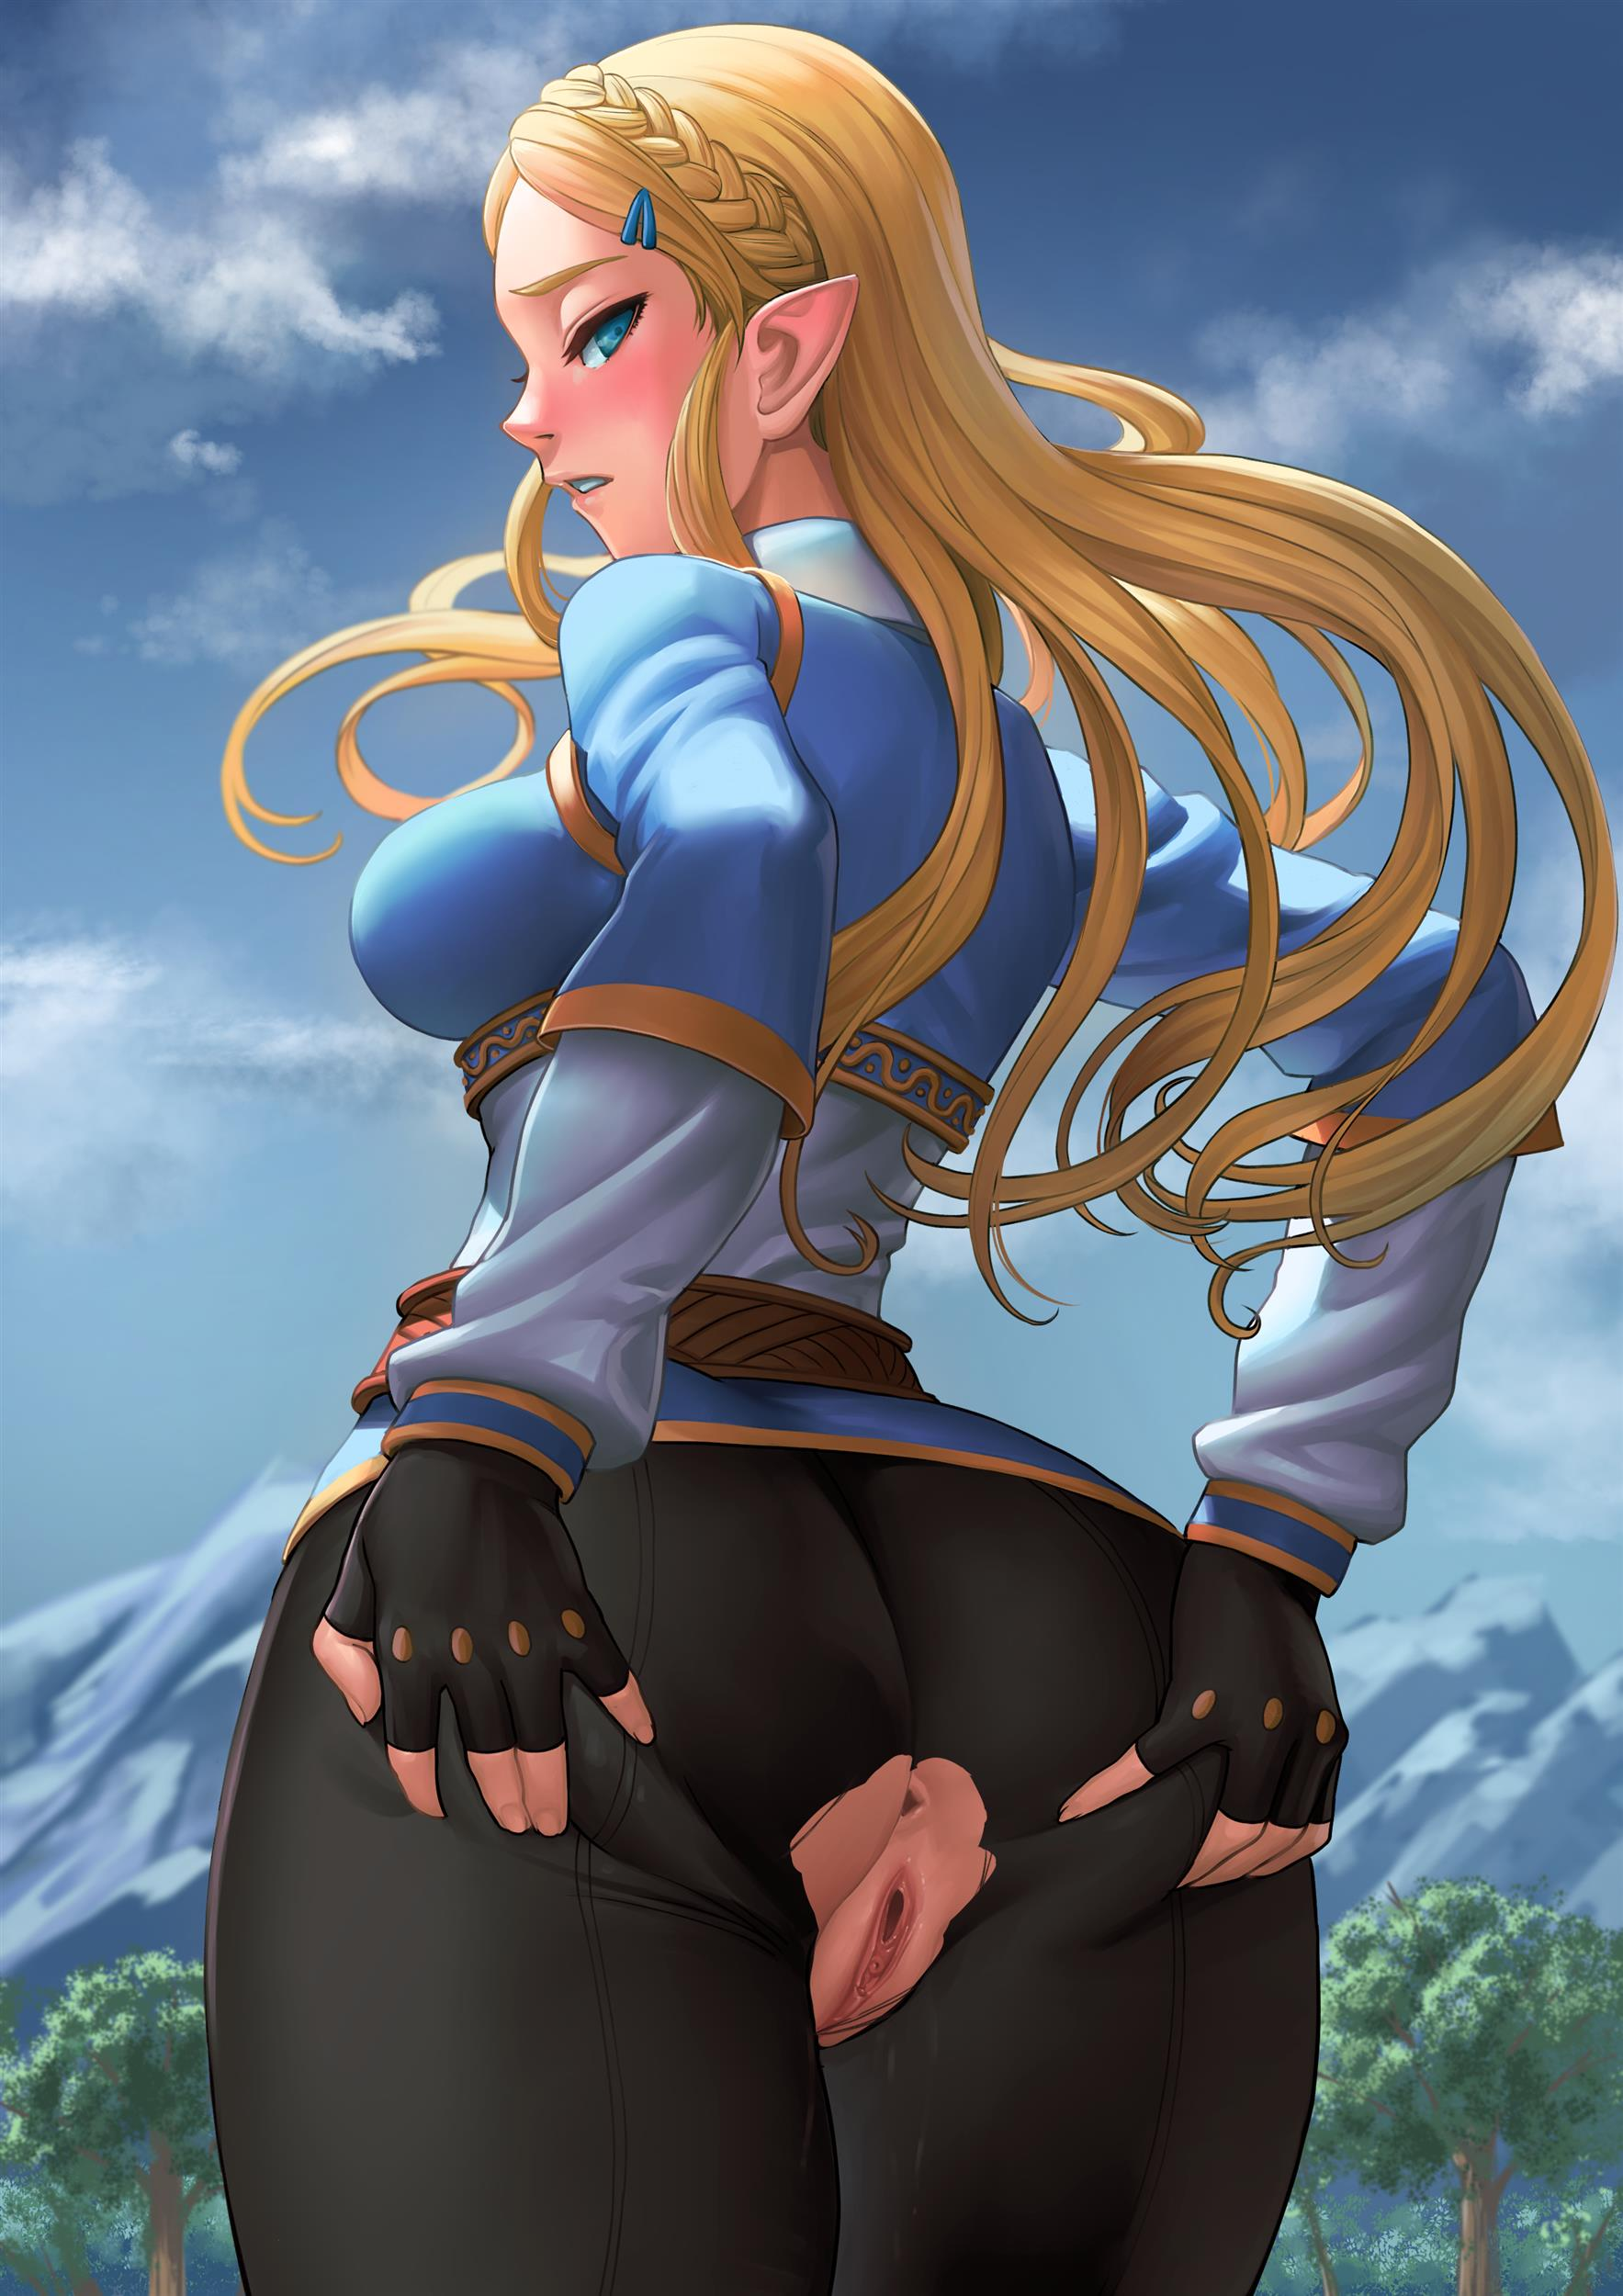 Zelda has a hole in her pants exposing her pussy